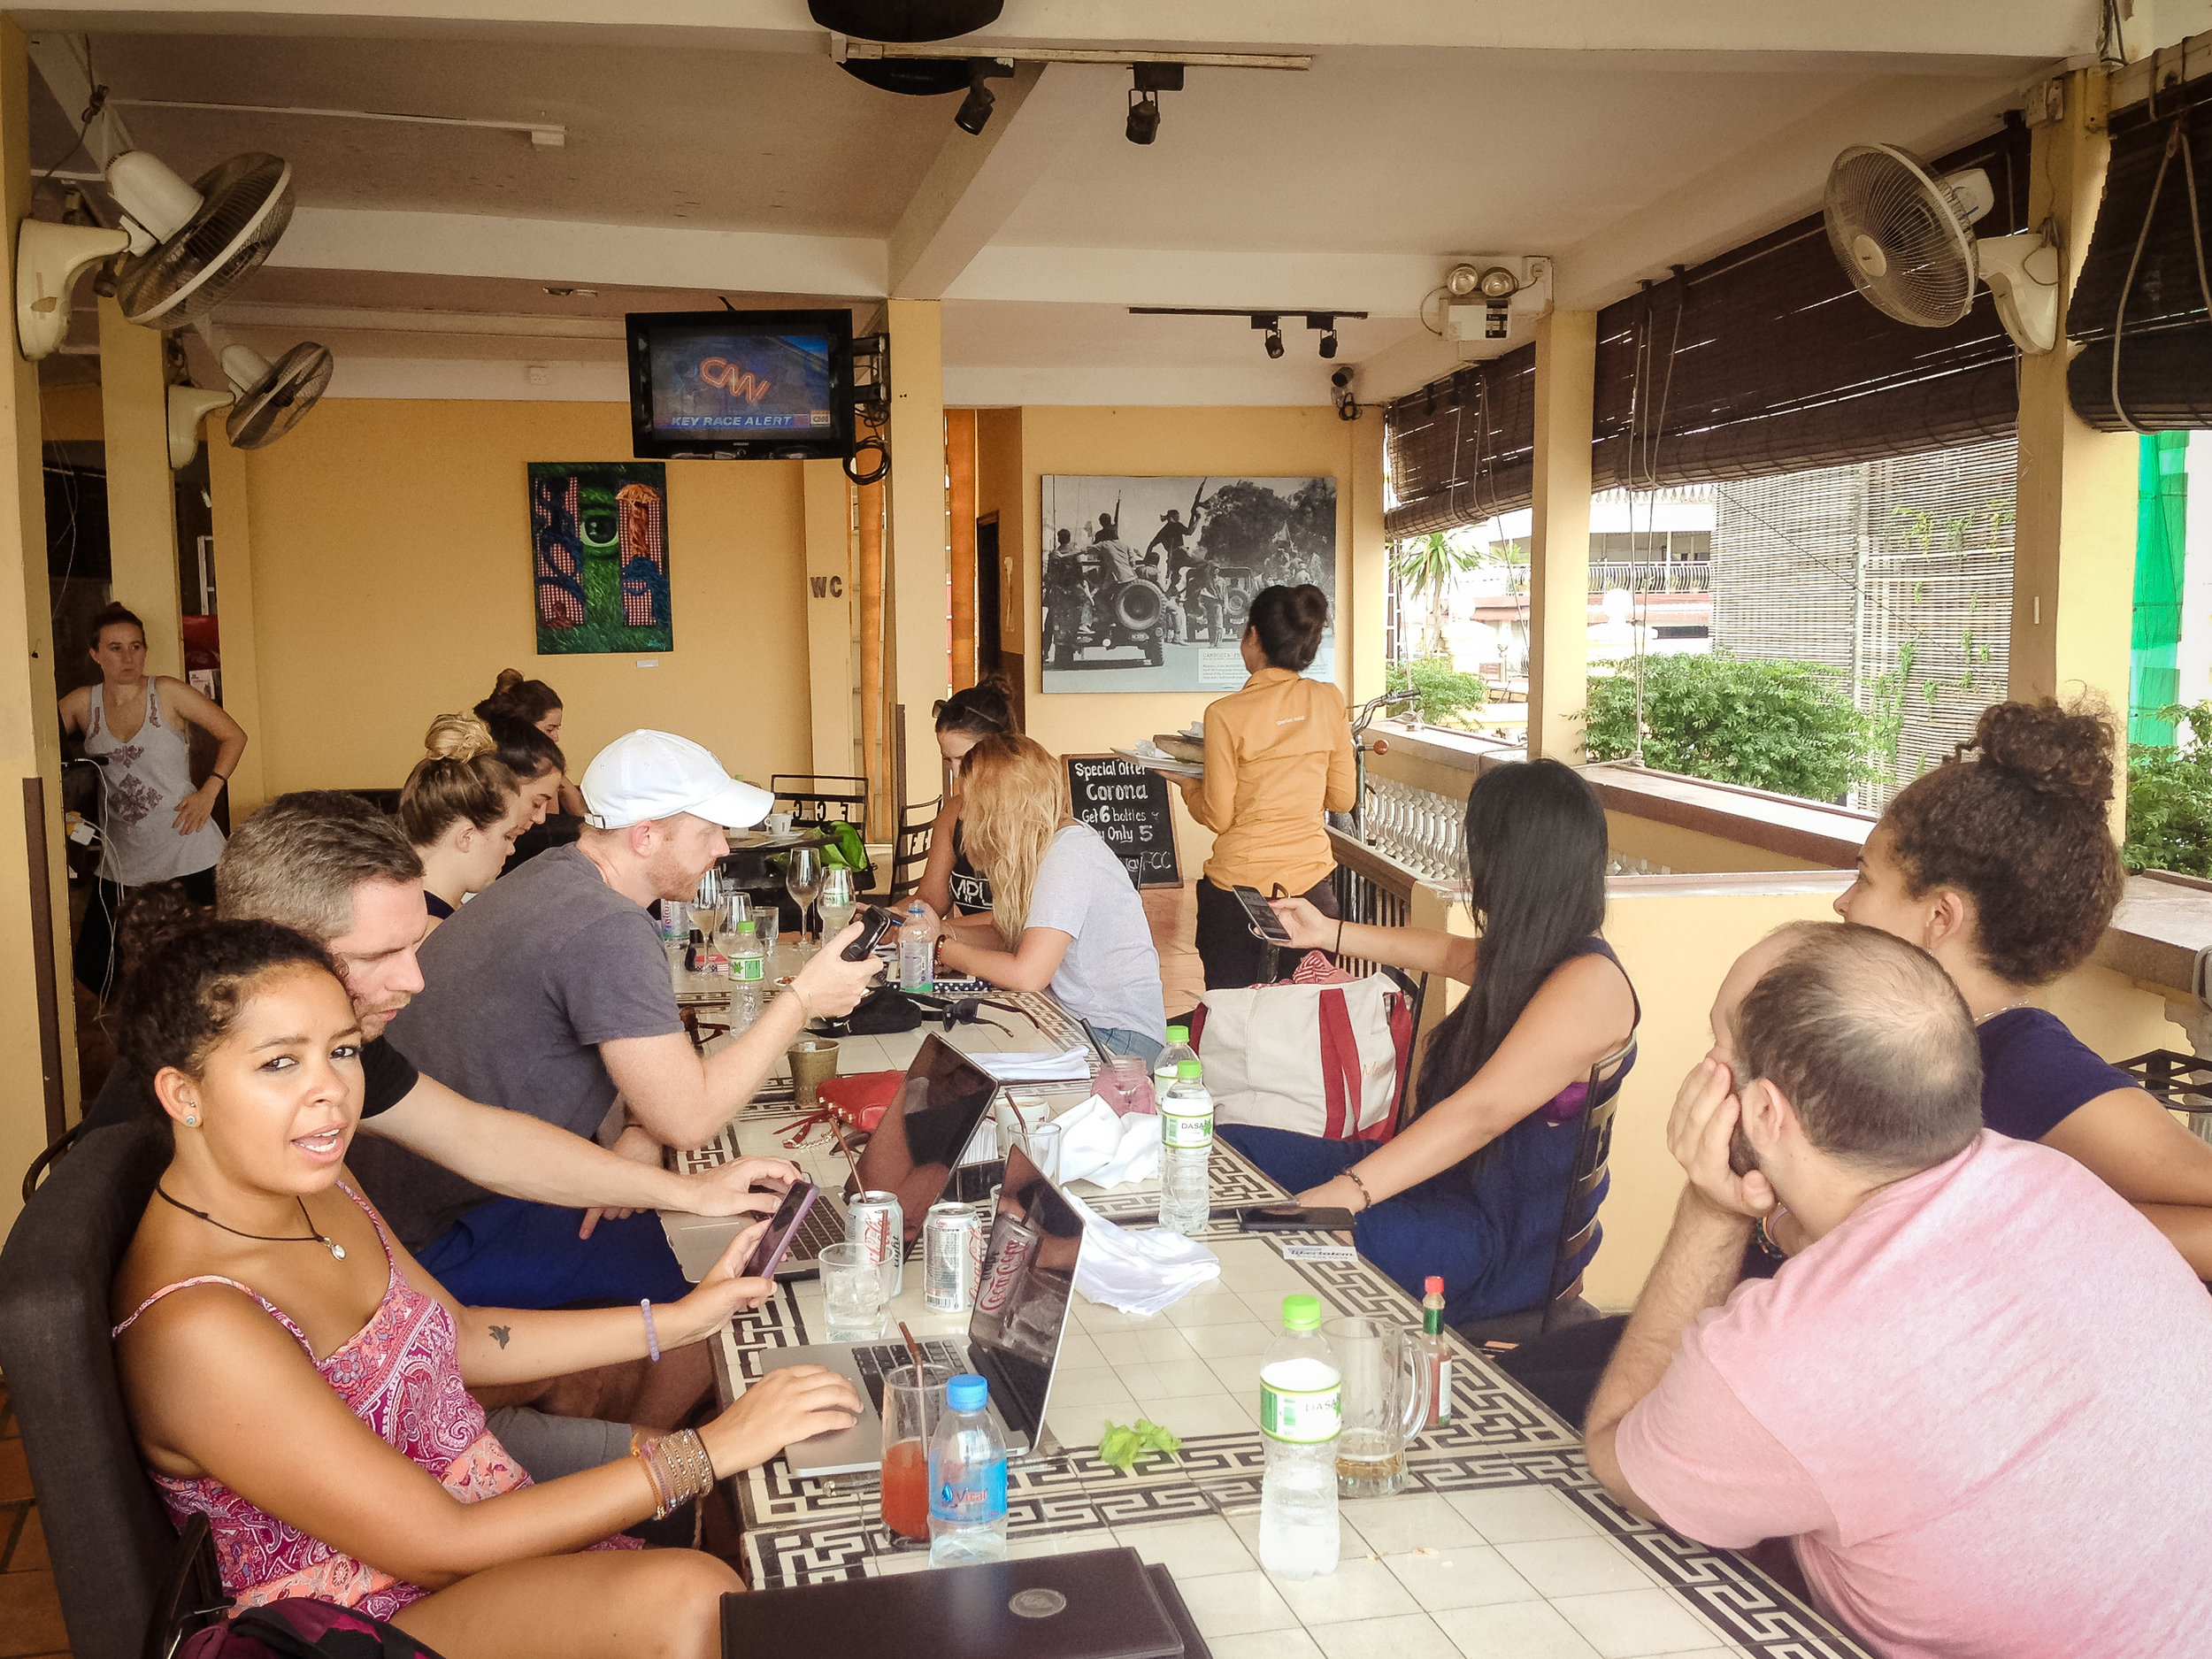 Wednesday November 9, 10:45am: Remotes watching the election results at the Foreign Correspondents Club in Phnom Penh, Cambodia.